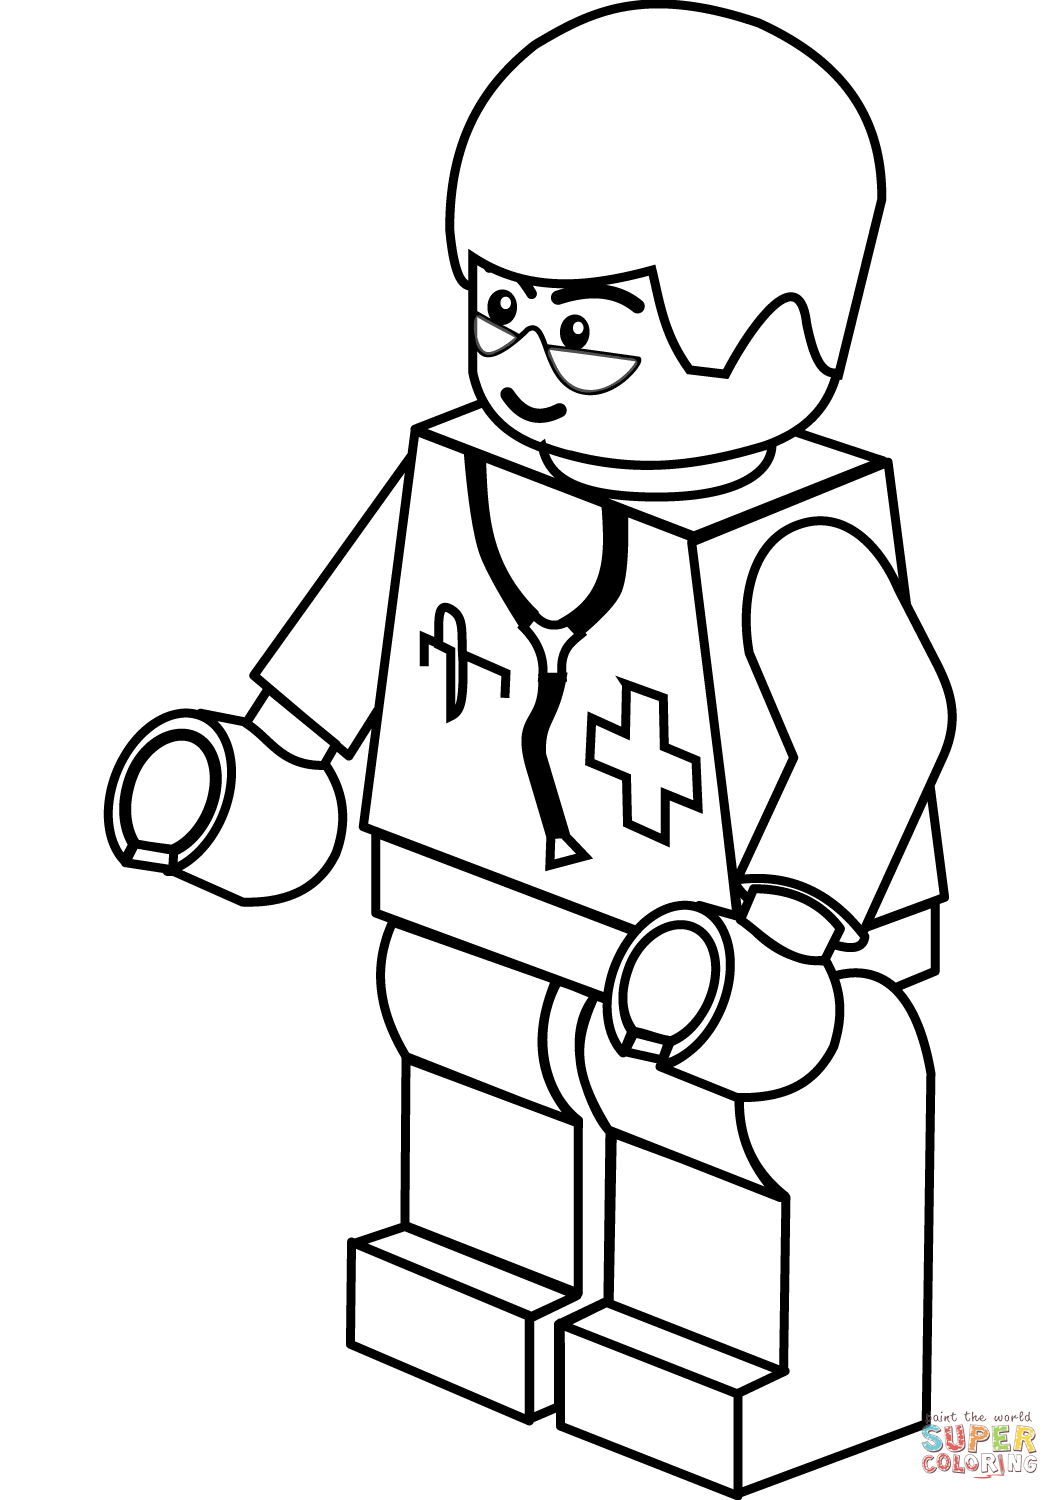 Lego Doctor Coloring Page Free Printable Coloring Pages Lego Coloring Pages Lego Coloring Lego Movie Coloring Pages